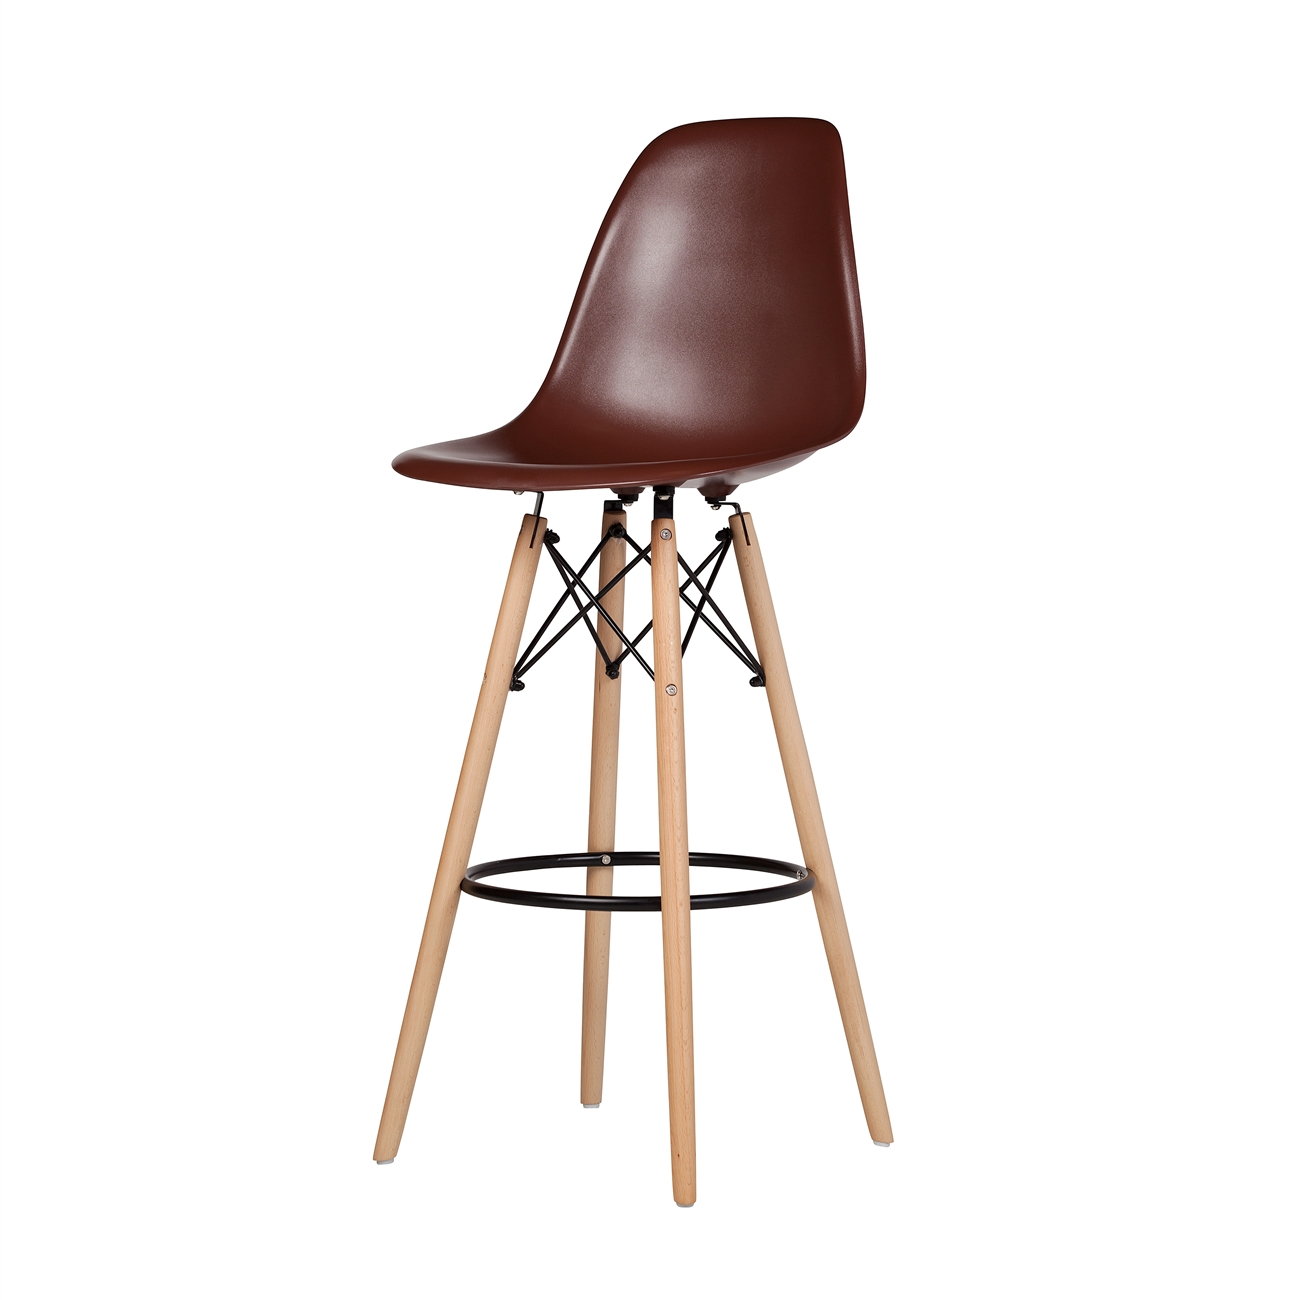 Groovy Molded Mid Century Bar Stool In Brown Beatyapartments Chair Design Images Beatyapartmentscom